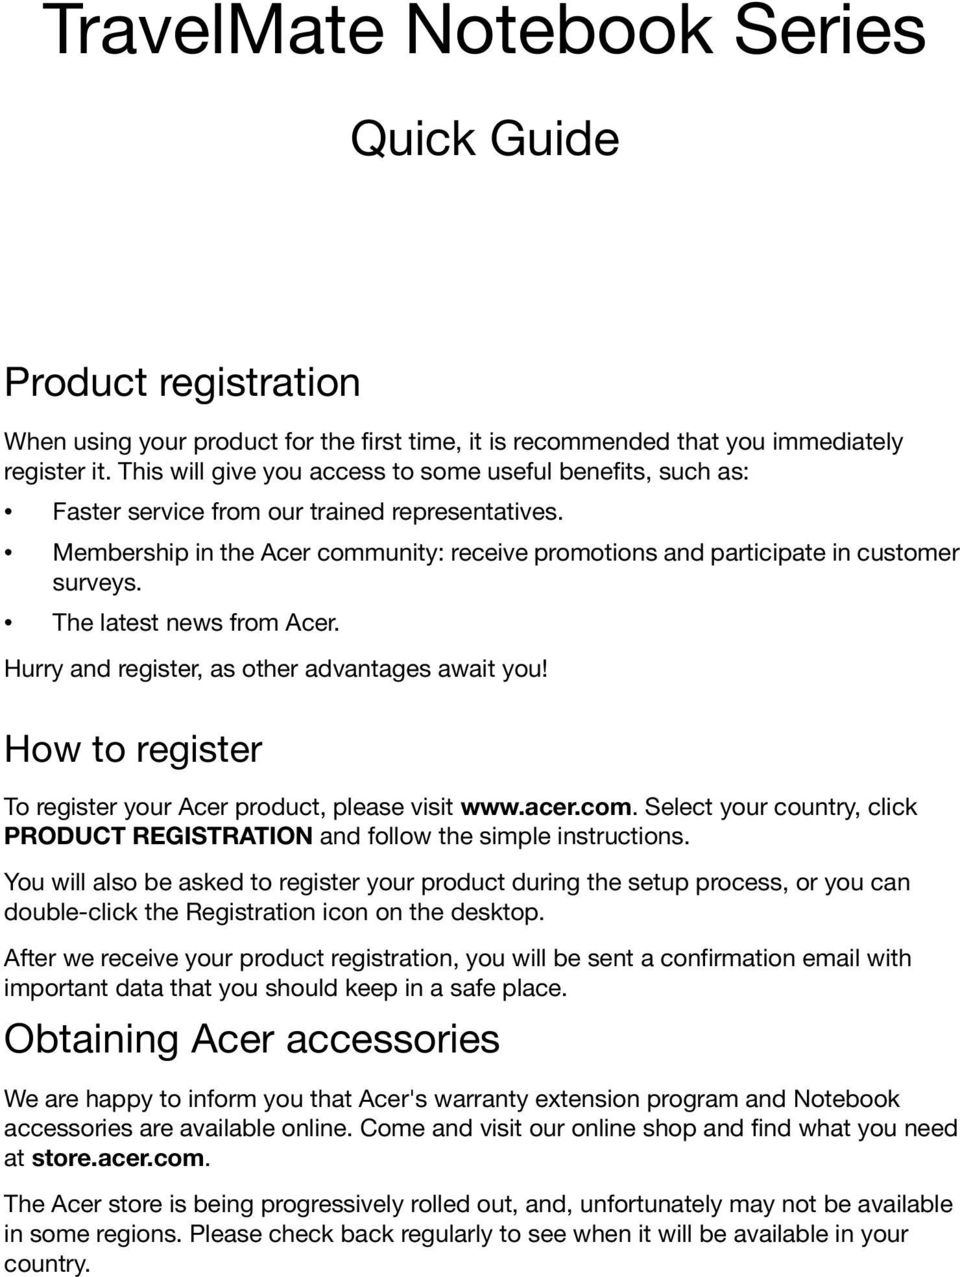 The latest news from Acer. Hurry and register, as other advantages await you! How to register To register your Acer product, please visit www.acer.com.